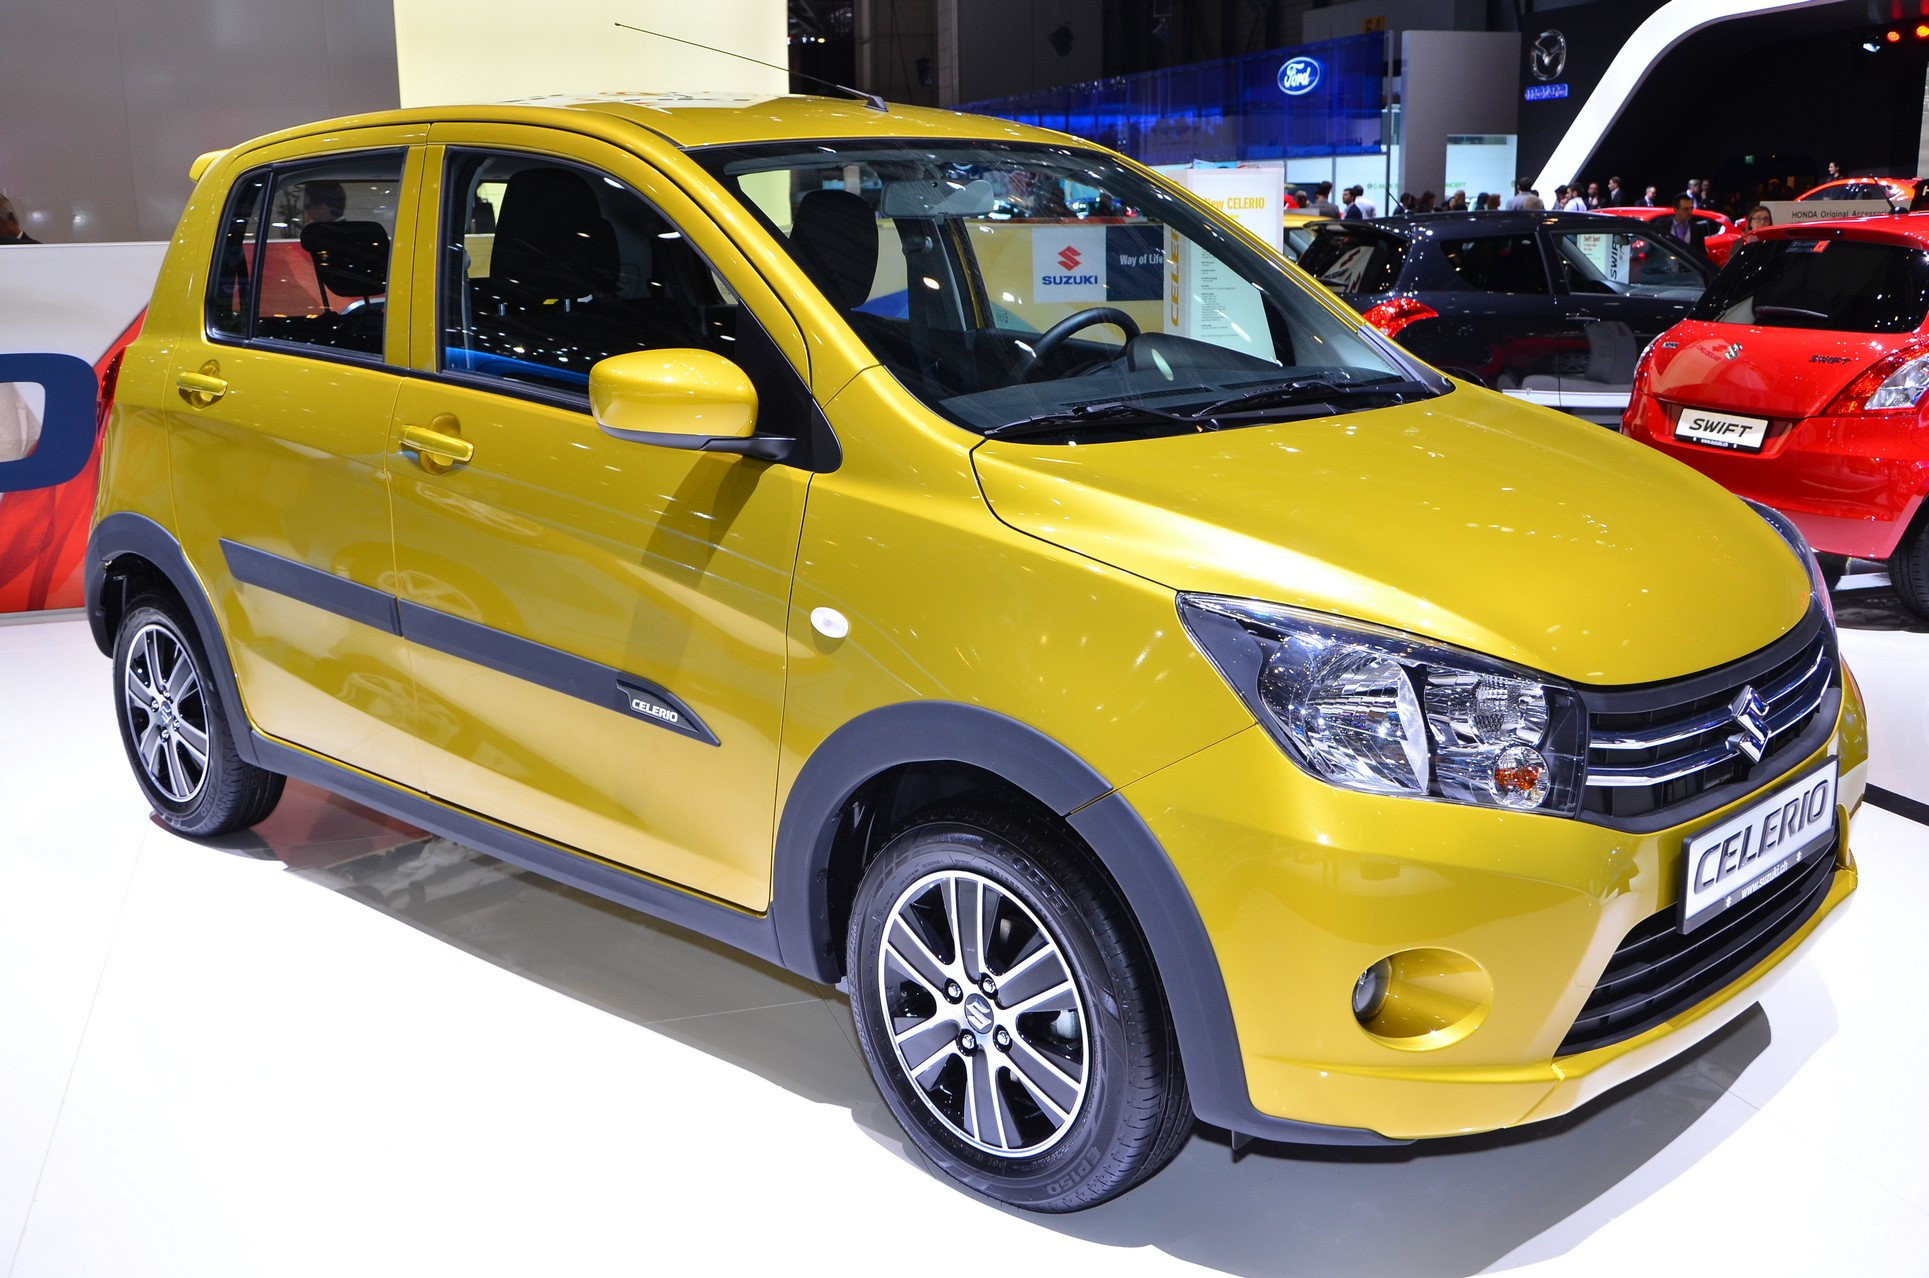 Suzuki Celerio Price In Pakistan